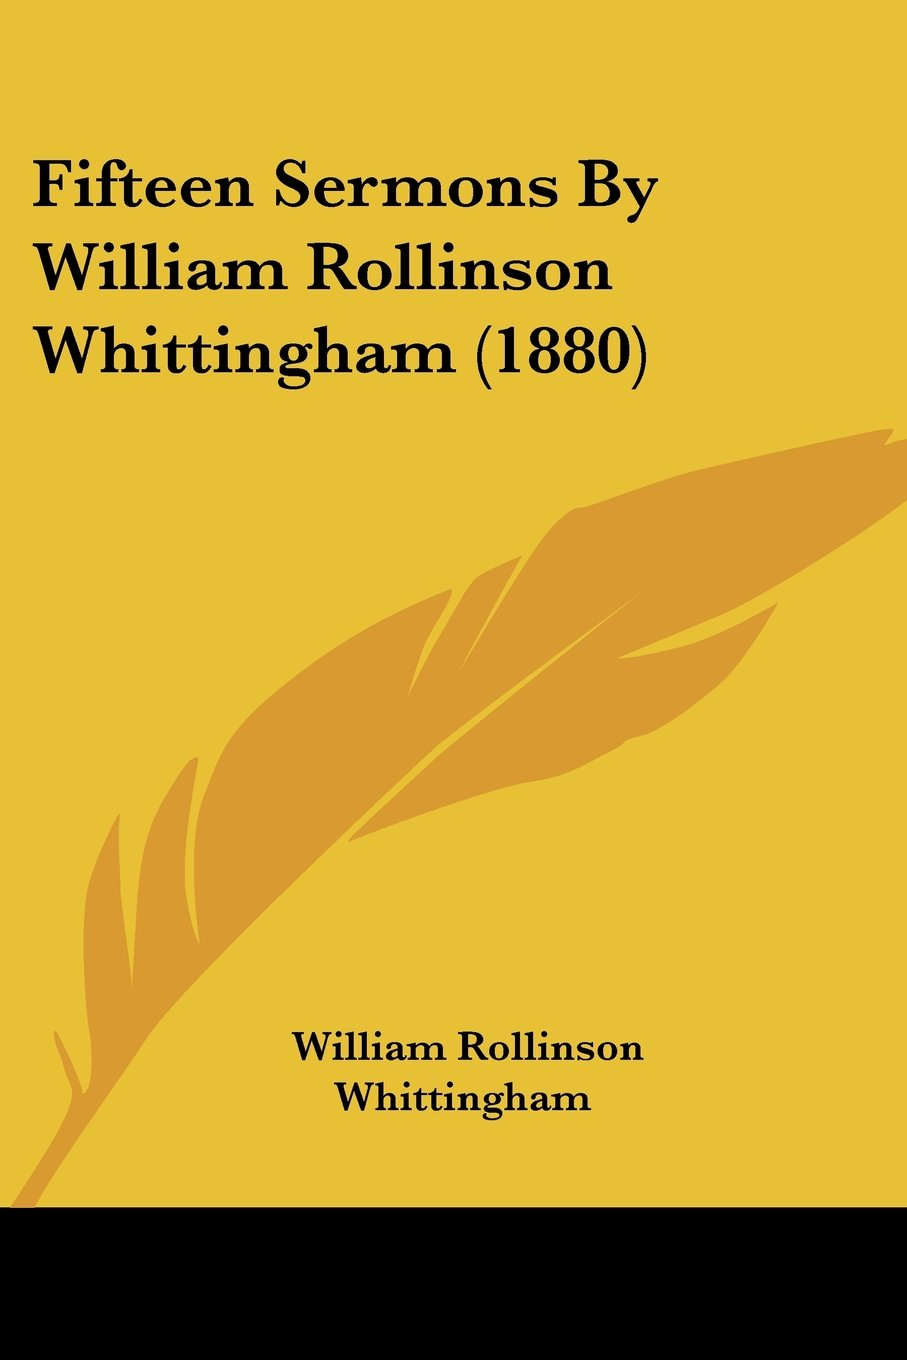 Download Fifteen Sermons By William Rollinson Whittingham (1880) ebook